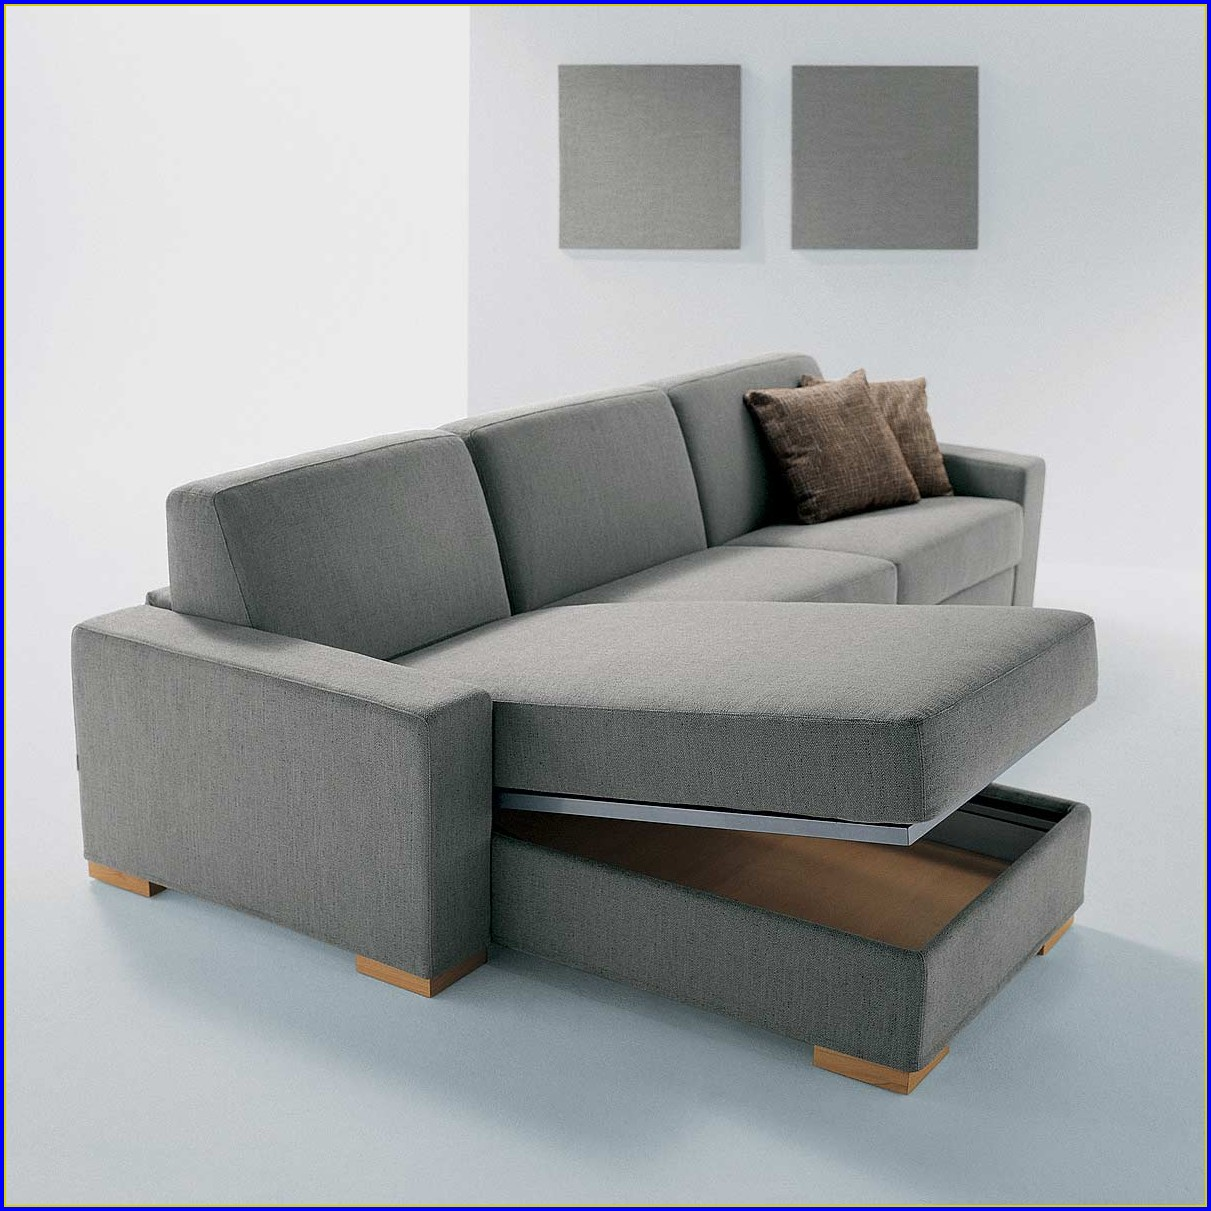 Convertible Sofa Bed Ikea